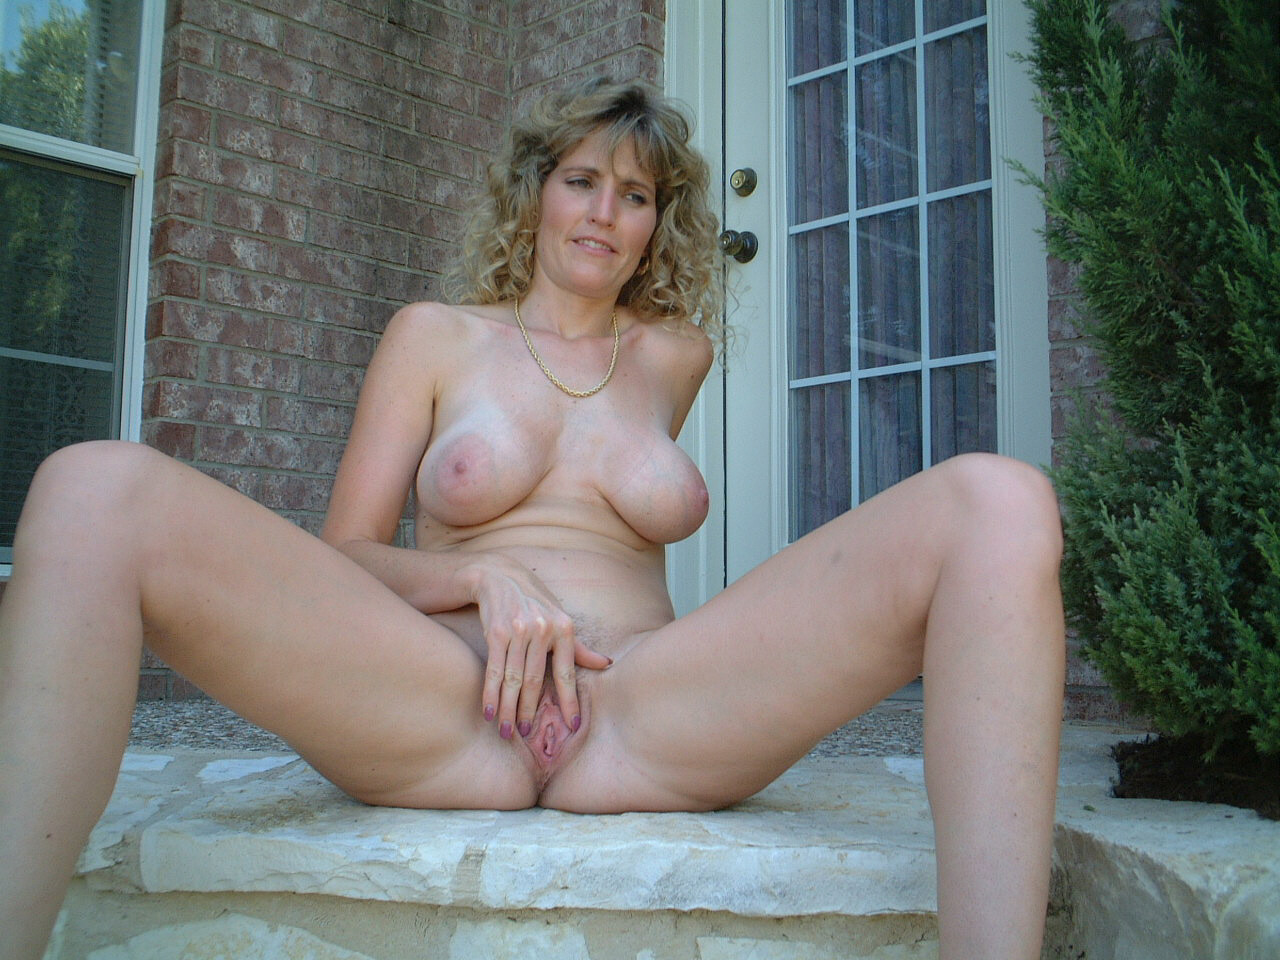 Really. Homemade mature nude naked pictures same... sorry